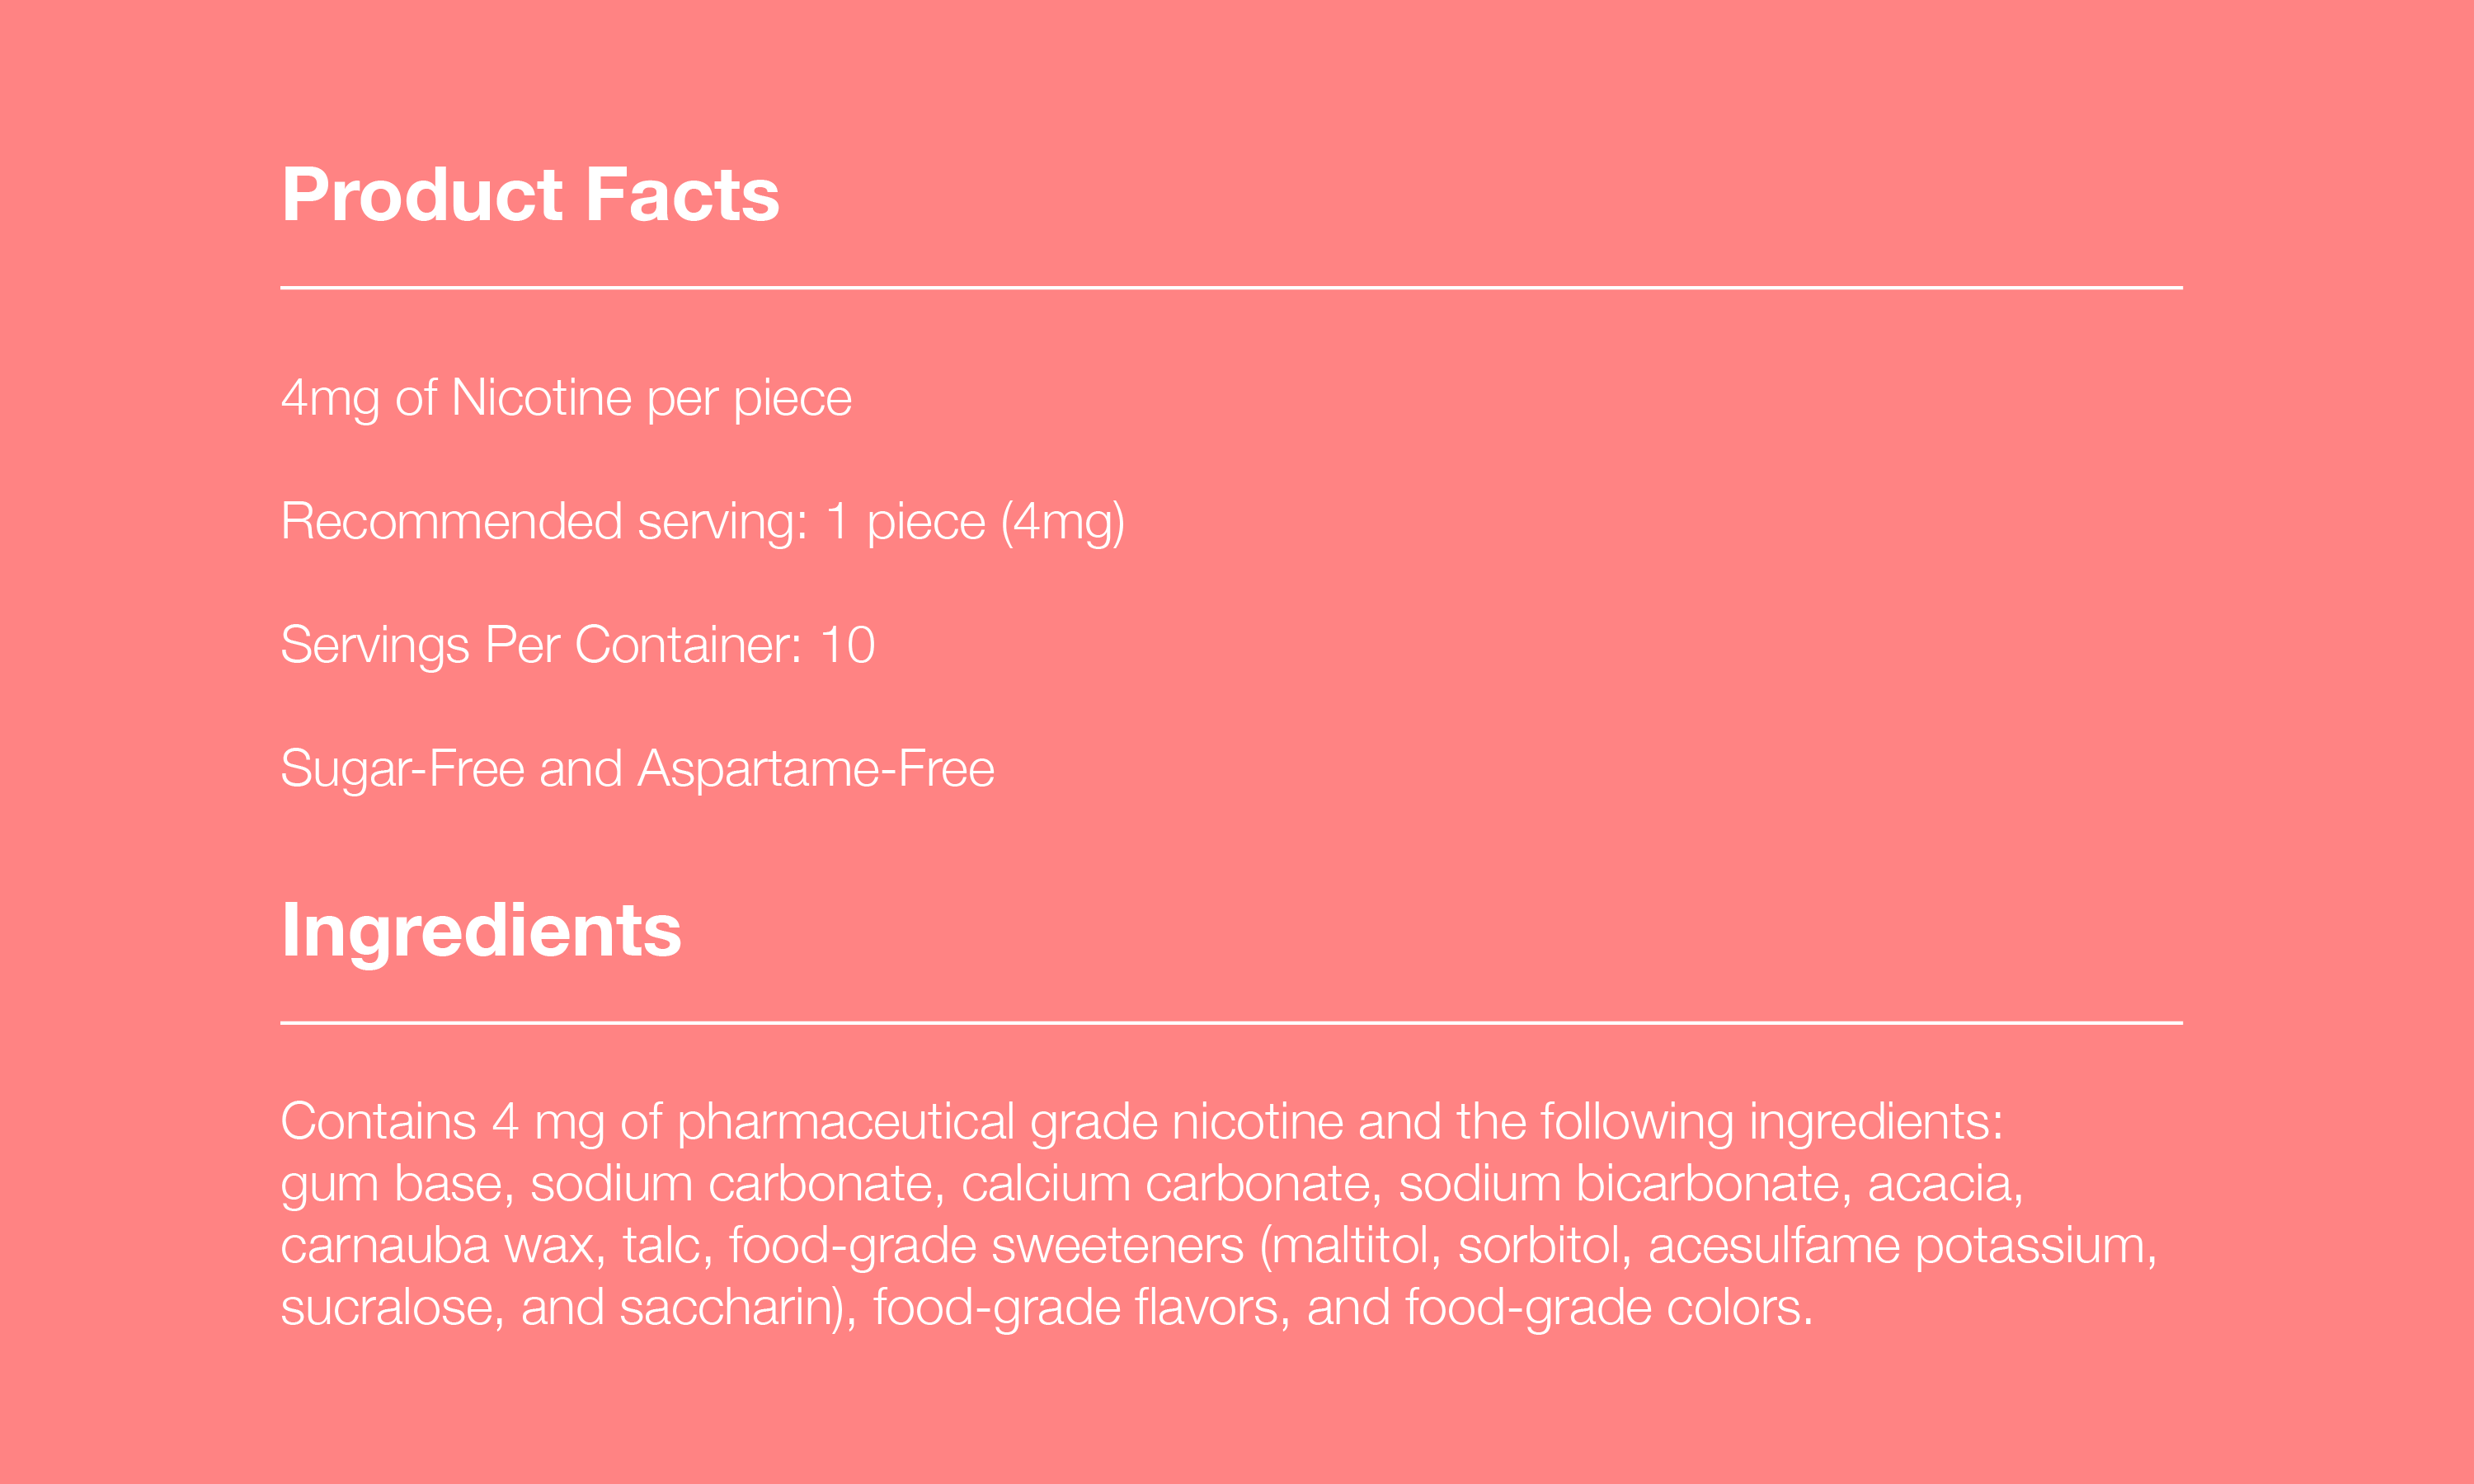 product-facts.png